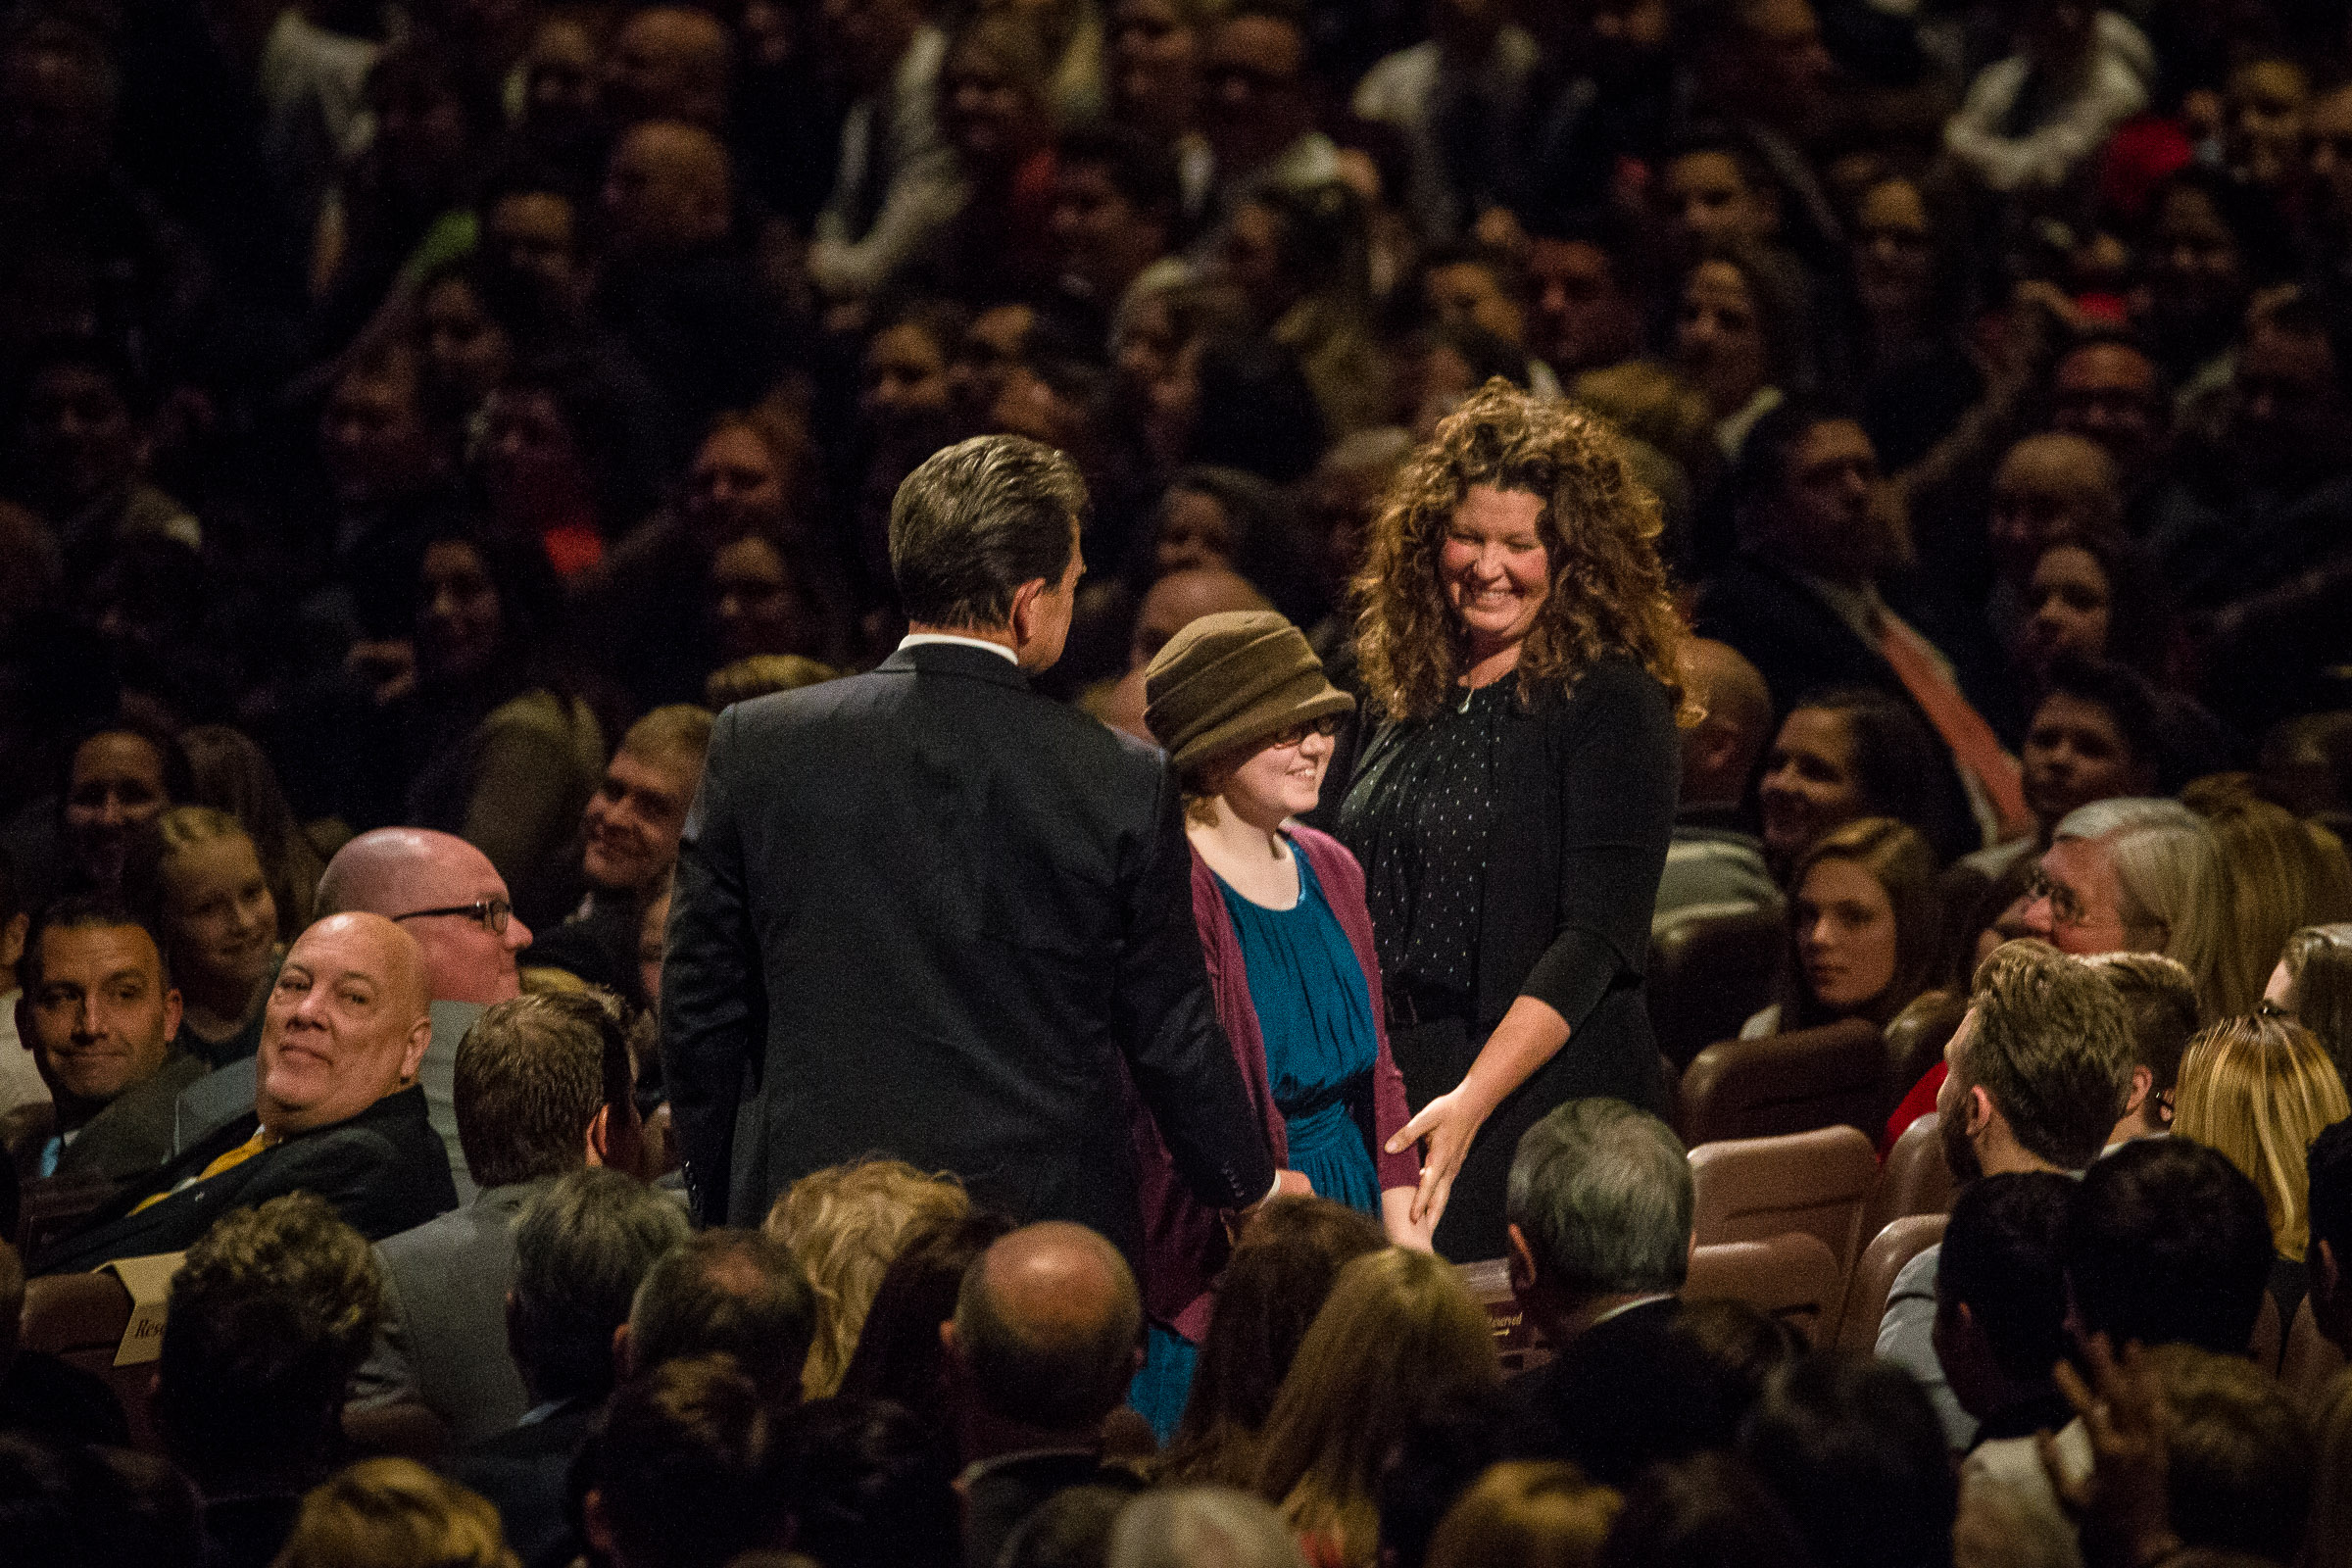 Stephen Terry, left, Lydia Terry, 12, and Kellie Terry stand up and are recognized during President Russell M. Nelson address during the First Presidency's Christmas Devotional at the Conference Center in Salt Lake City on Sunday, Dec. 2, 2018. Lydia, of Bountiful, suffers from a rare, aggressive form of brain cancer.